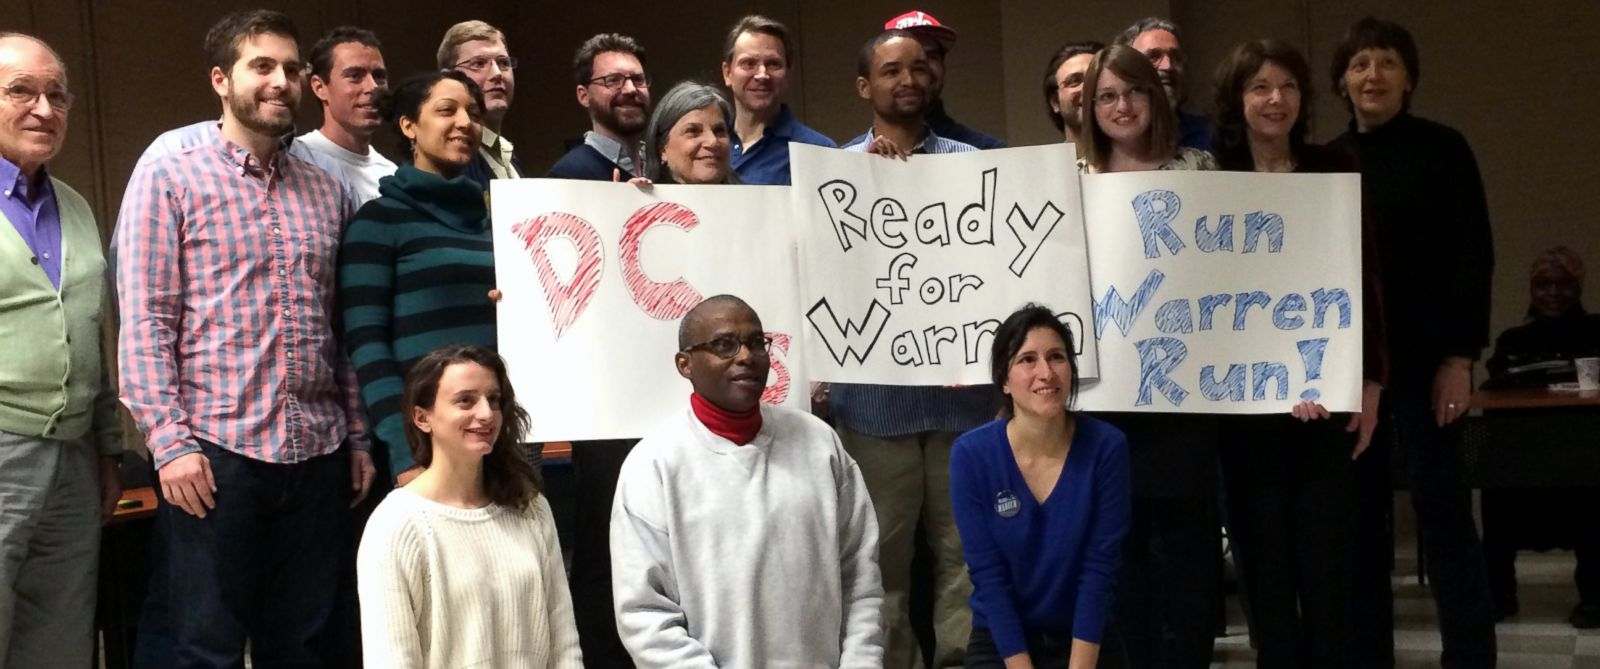 PHOTO: The group poses for a photo at the Run Warren Run meeting Feb. 1 at Martin Luther King Jr. Library in DC.